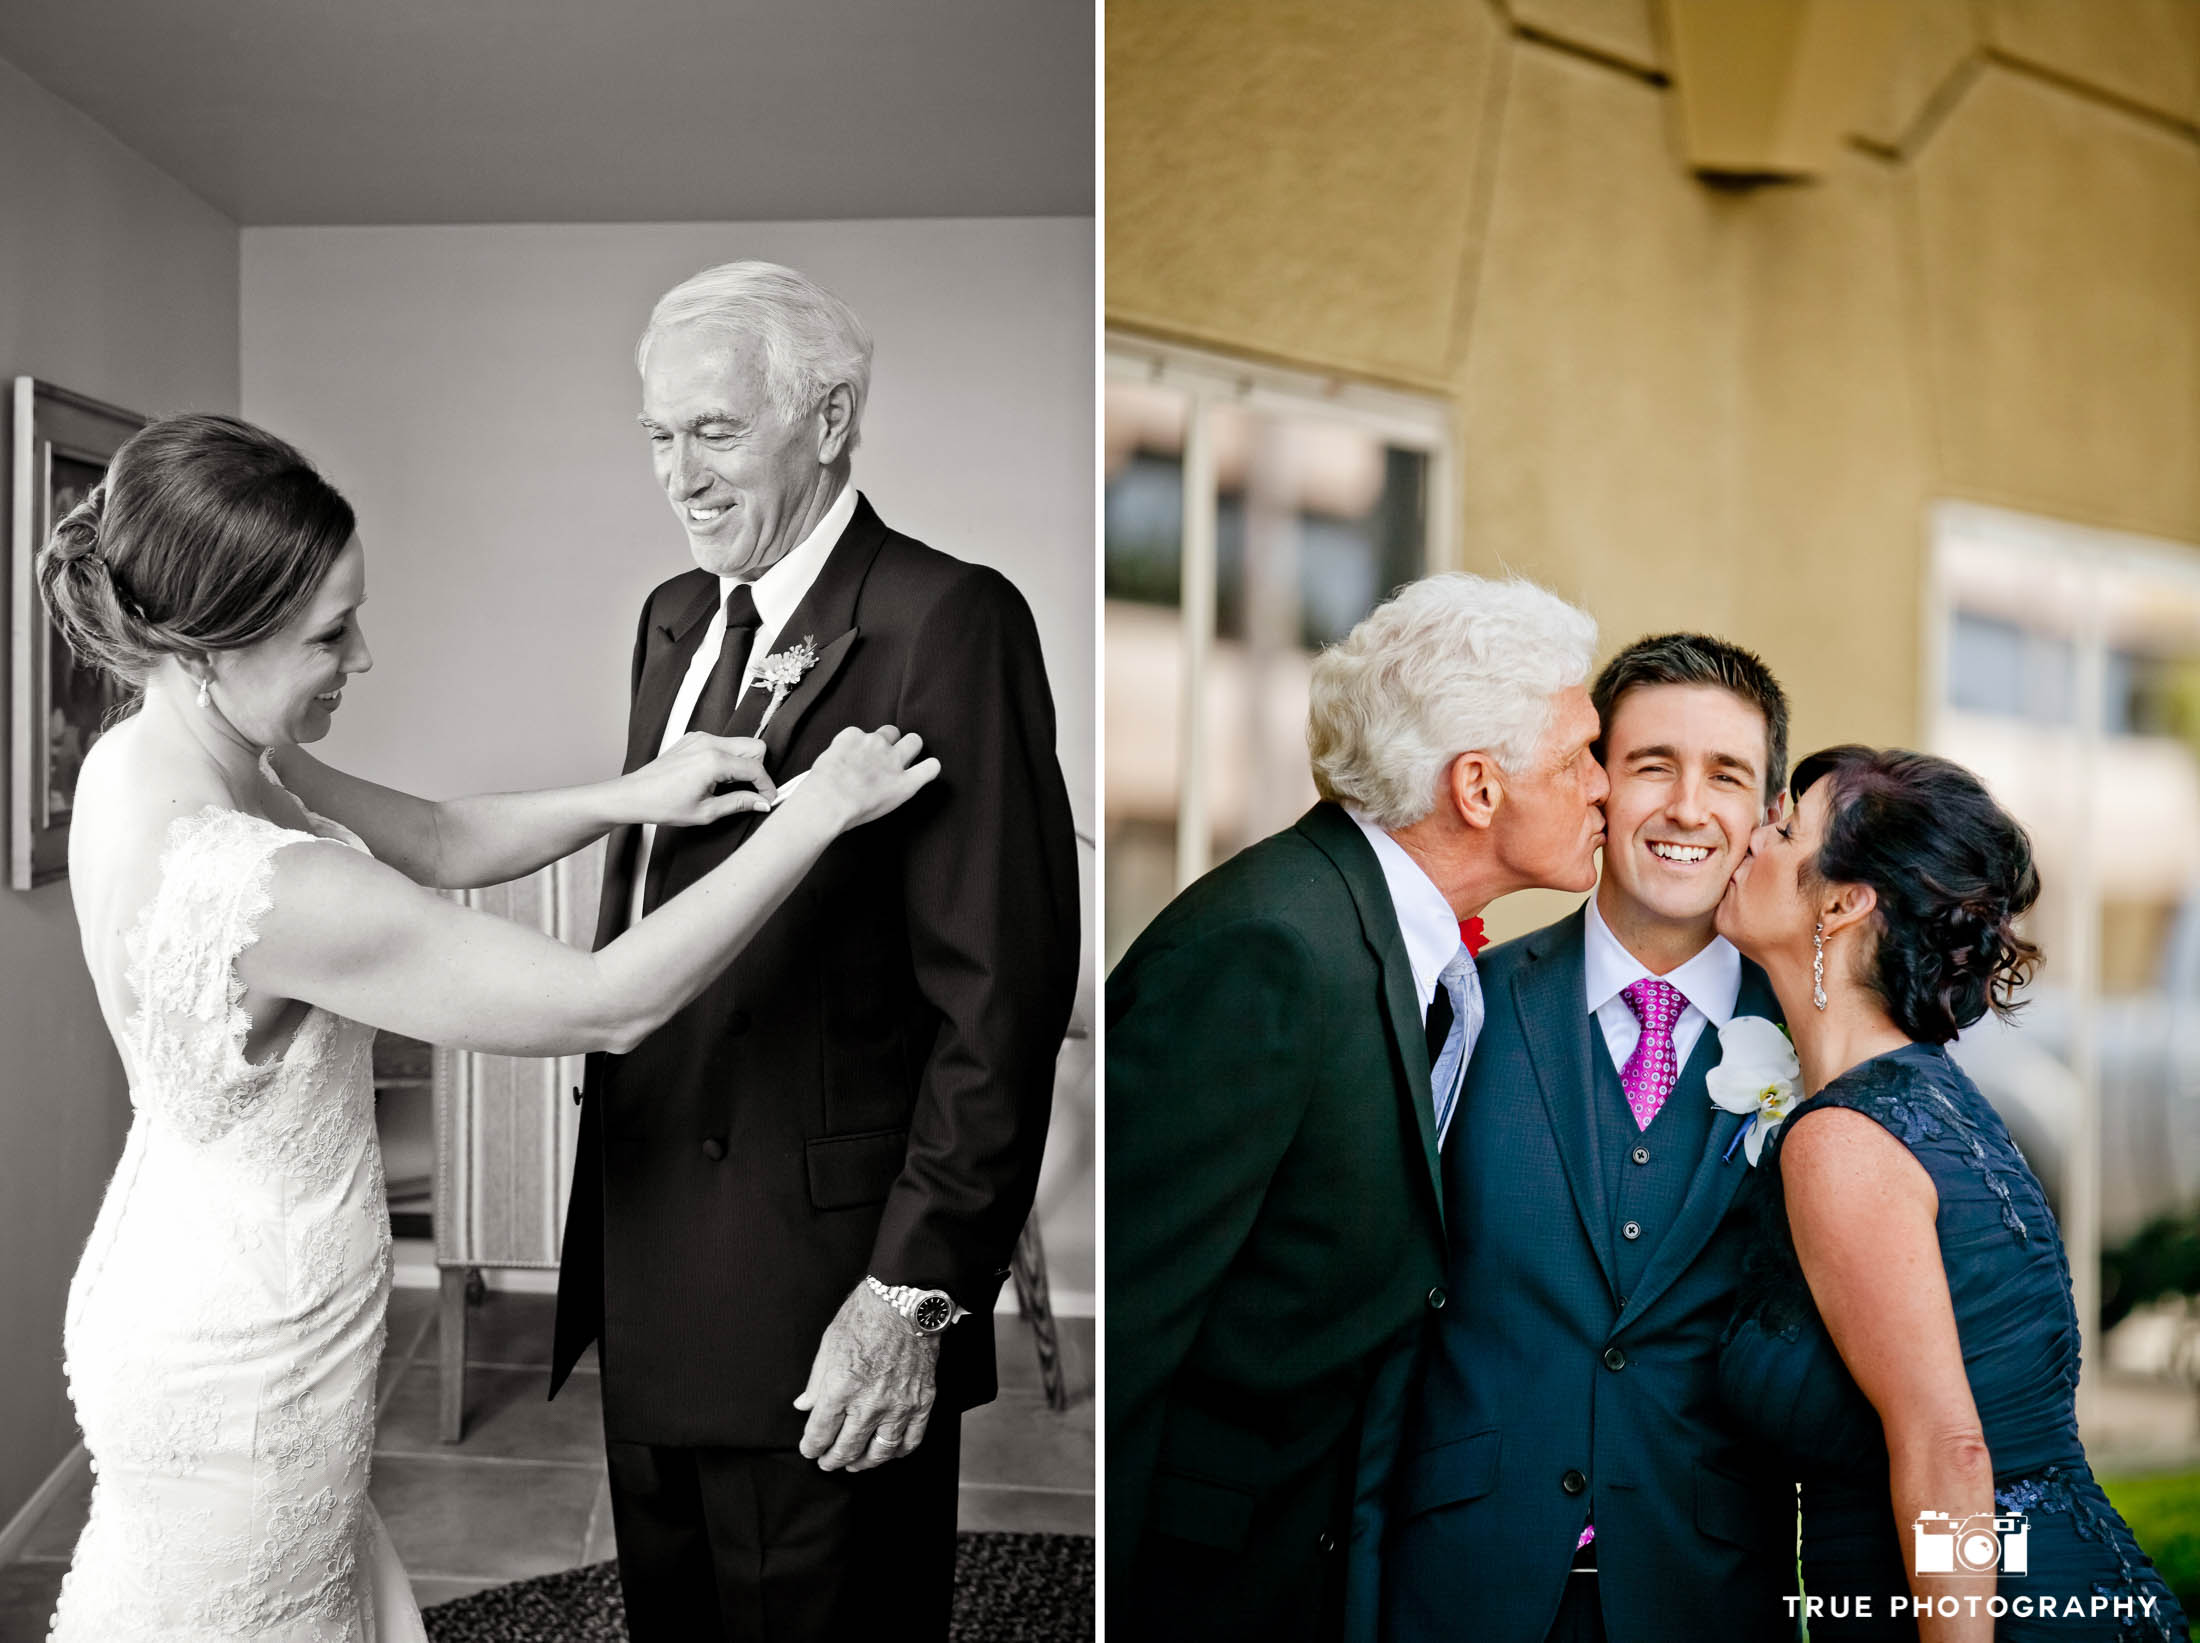 Parents kiss Groom on cheeks while Bride helps Dad during pre-ceremony